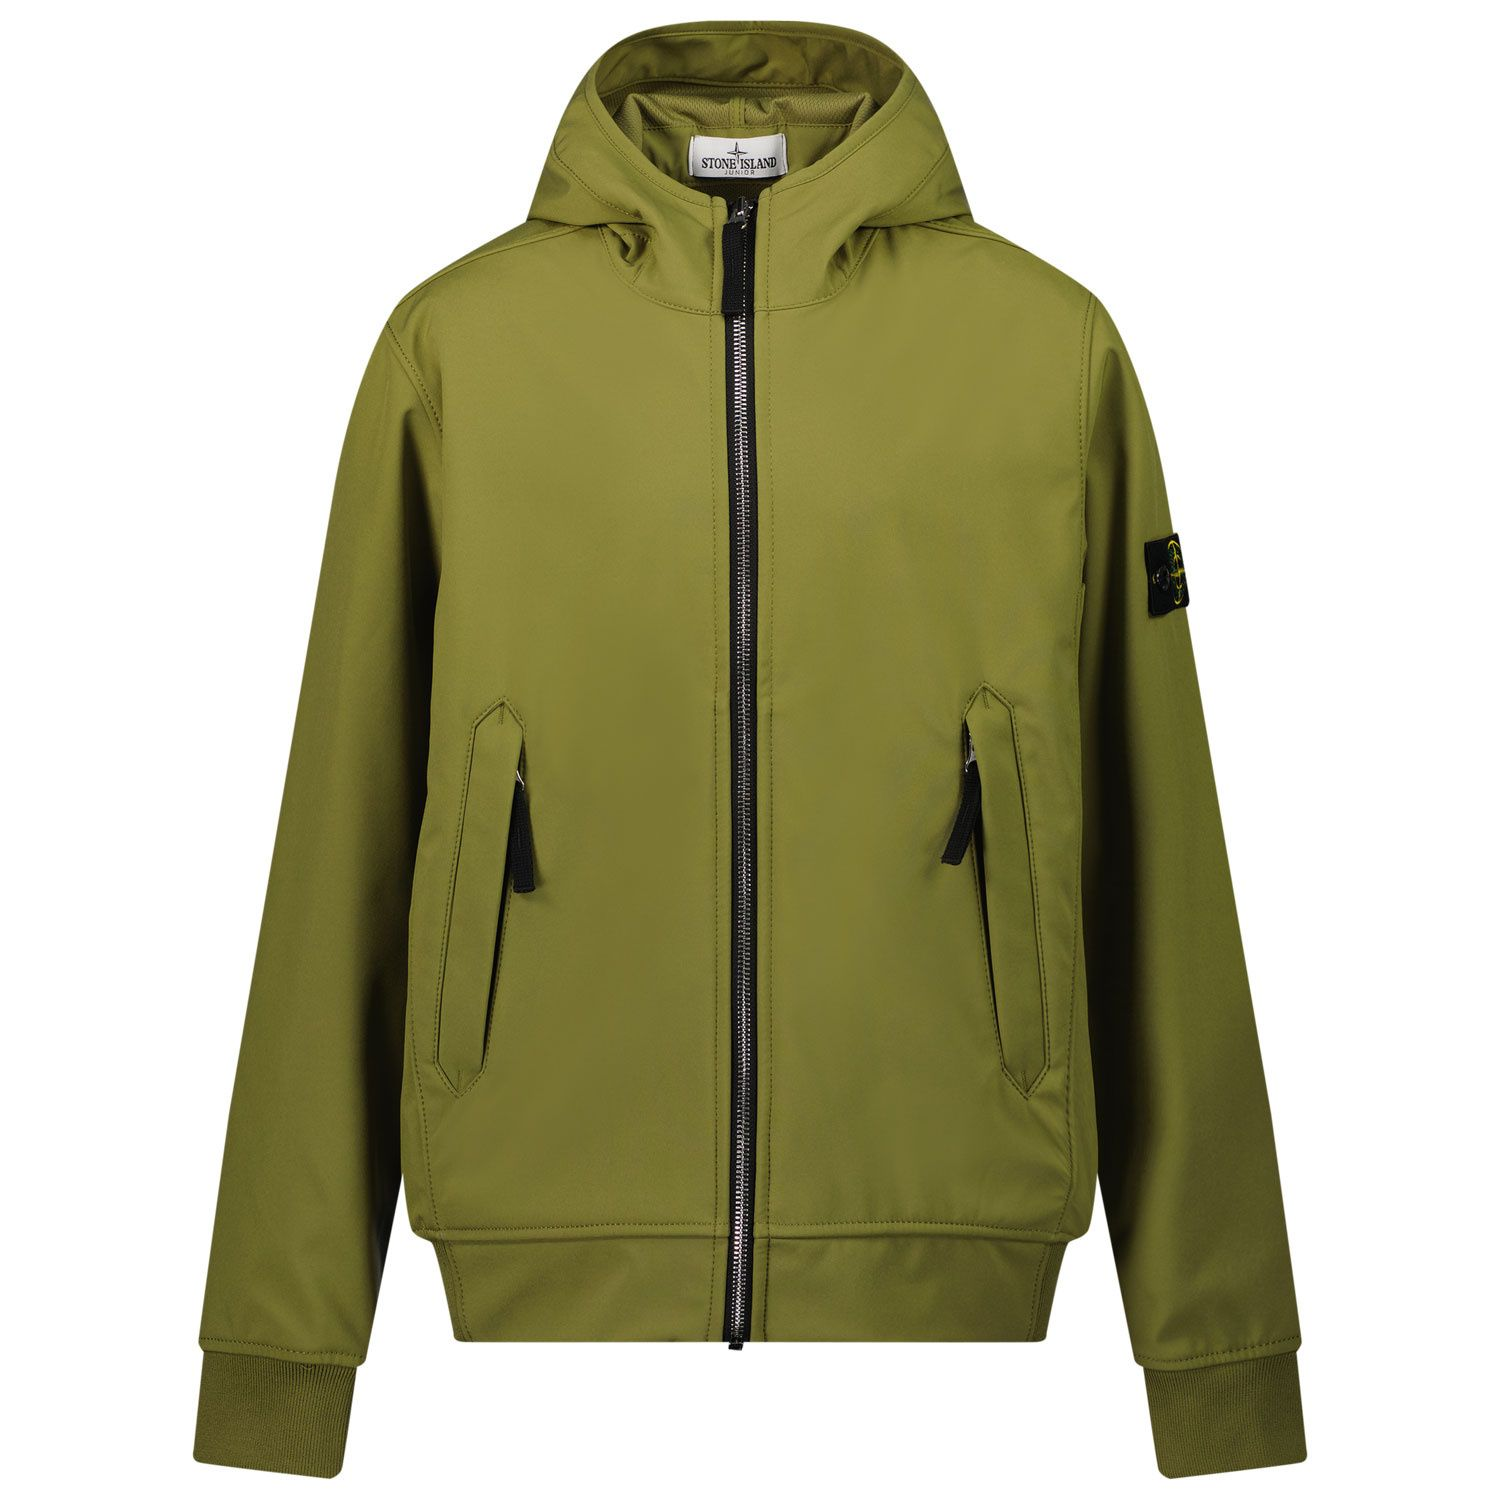 Picture of Stone Island 40134 kids jacket olive green